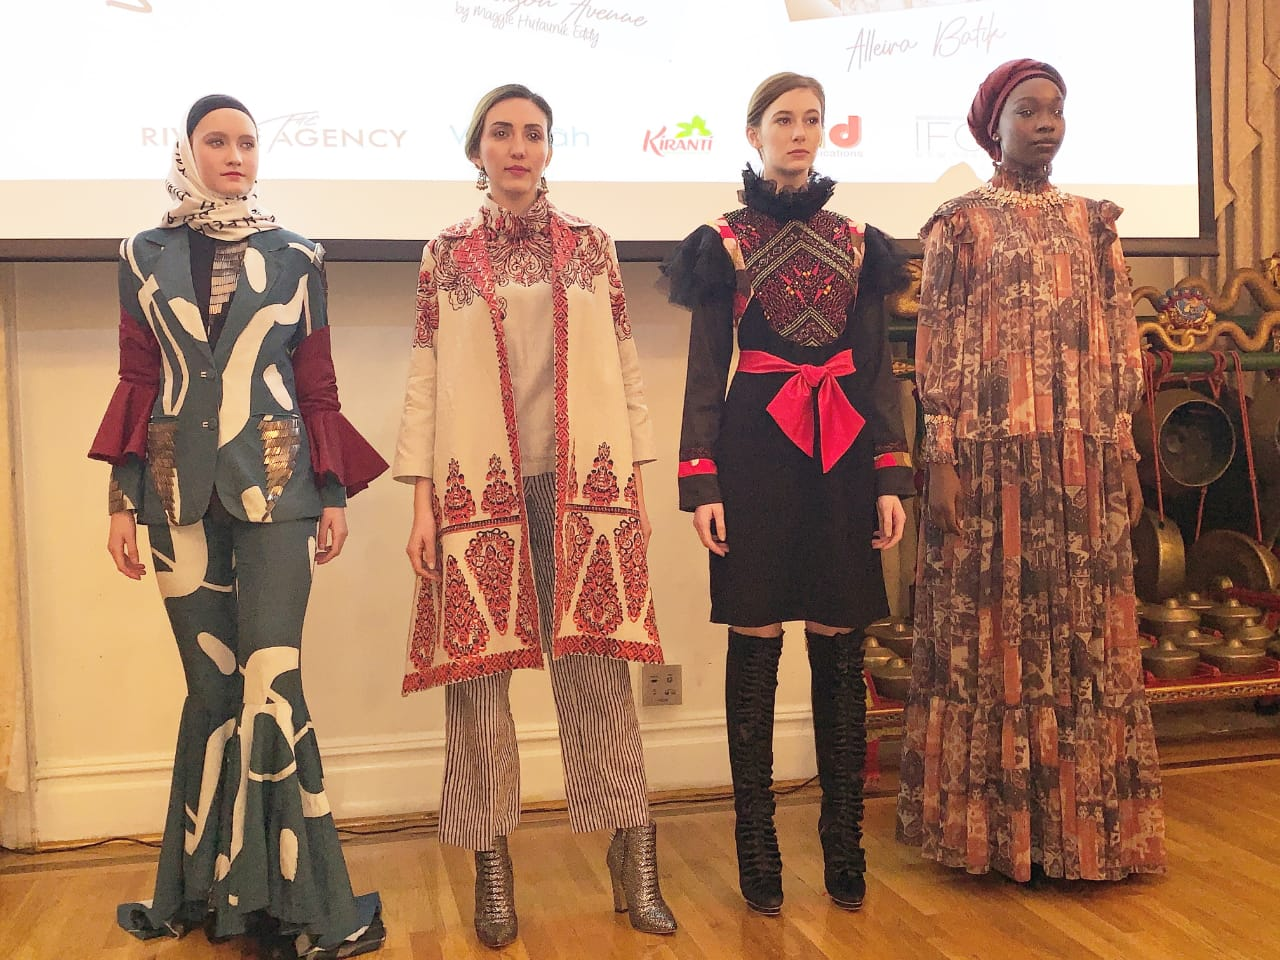 https: img-k.okeinfo.net content 2019 01 21 194 2007313 4-designer-indonesia-luncurkan-koleksi-fall-winter-2019-di-new-york-fashion-week-rgOEPDQEGv.jpeg